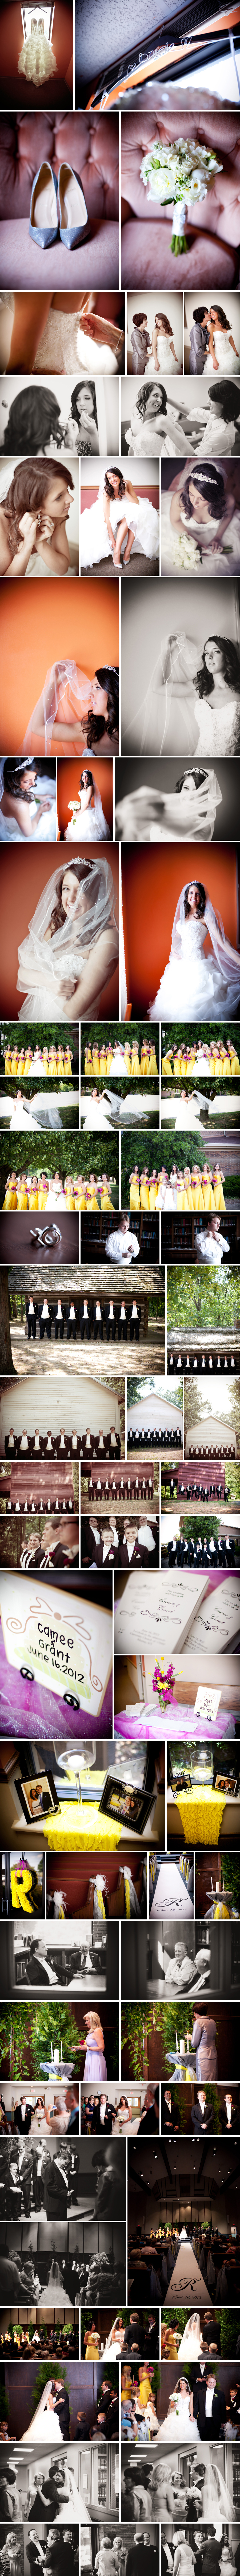 lane photography, nashville wedding photography, nashville wedding photographers, affordable wedding photographers, affordable wedding photography, murray ky wedding photography, murray ky, murray kentucky, murray state university, university church of christ, http://www.lanephotographyonline.com